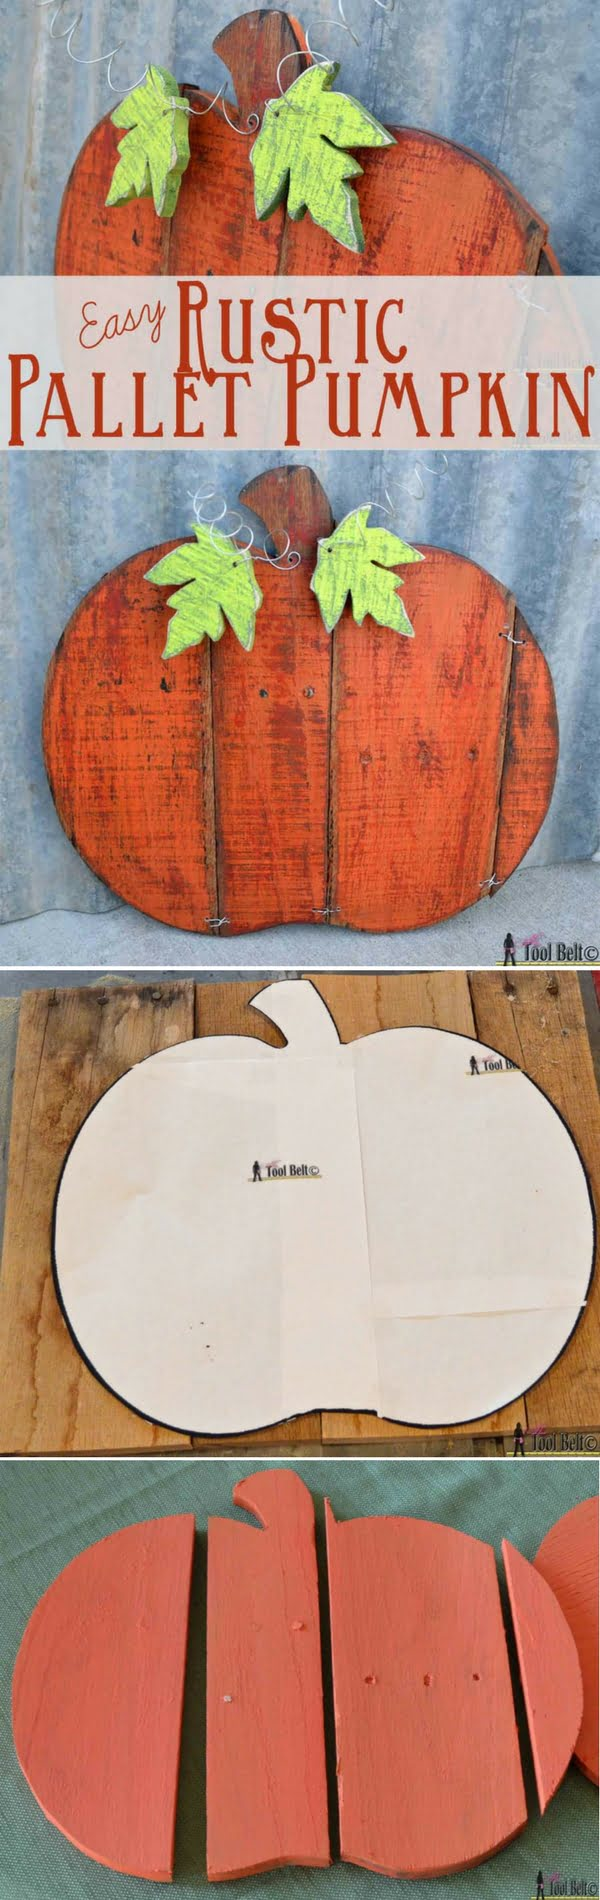 Check out the tutorial on how to make #DIY #rustic pallet wood pumpkins #woodworking #homedecor #fall